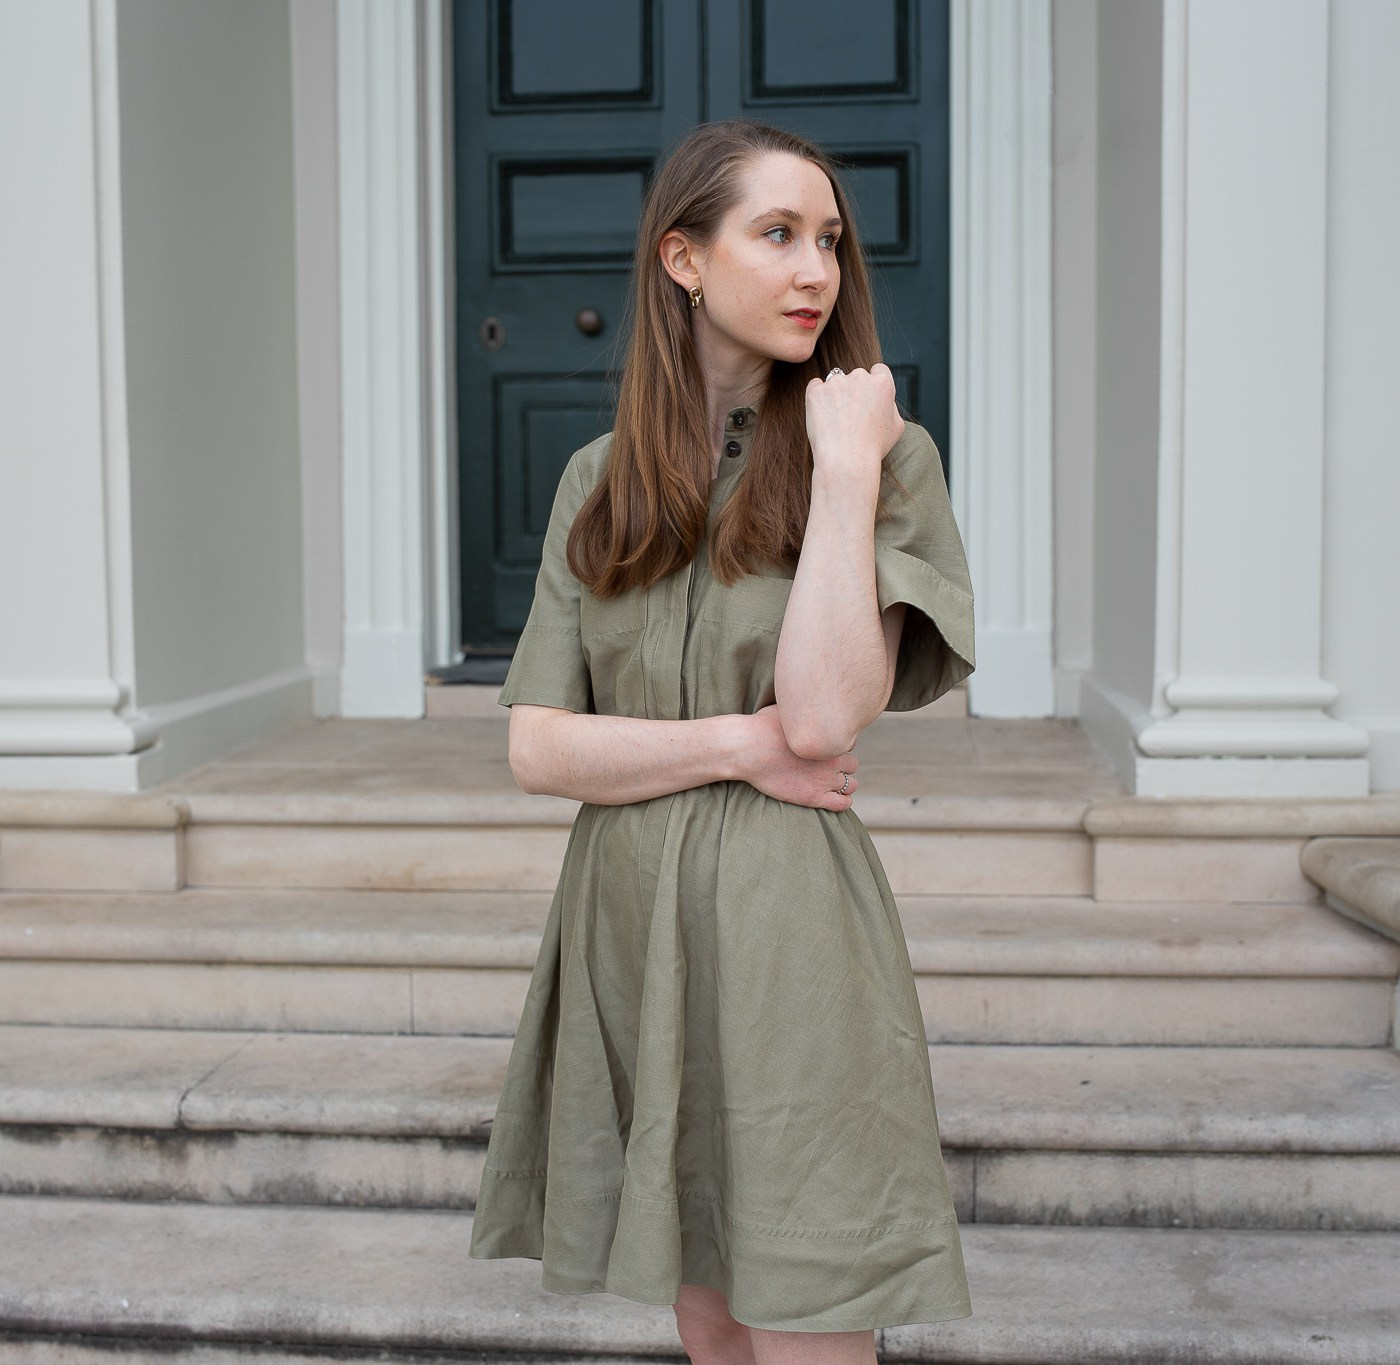 Girl standing in front of a historical building wearing a olive green dress, Hollywood Glamour, Minimalist style inspiration, historical fashion, Regency Core